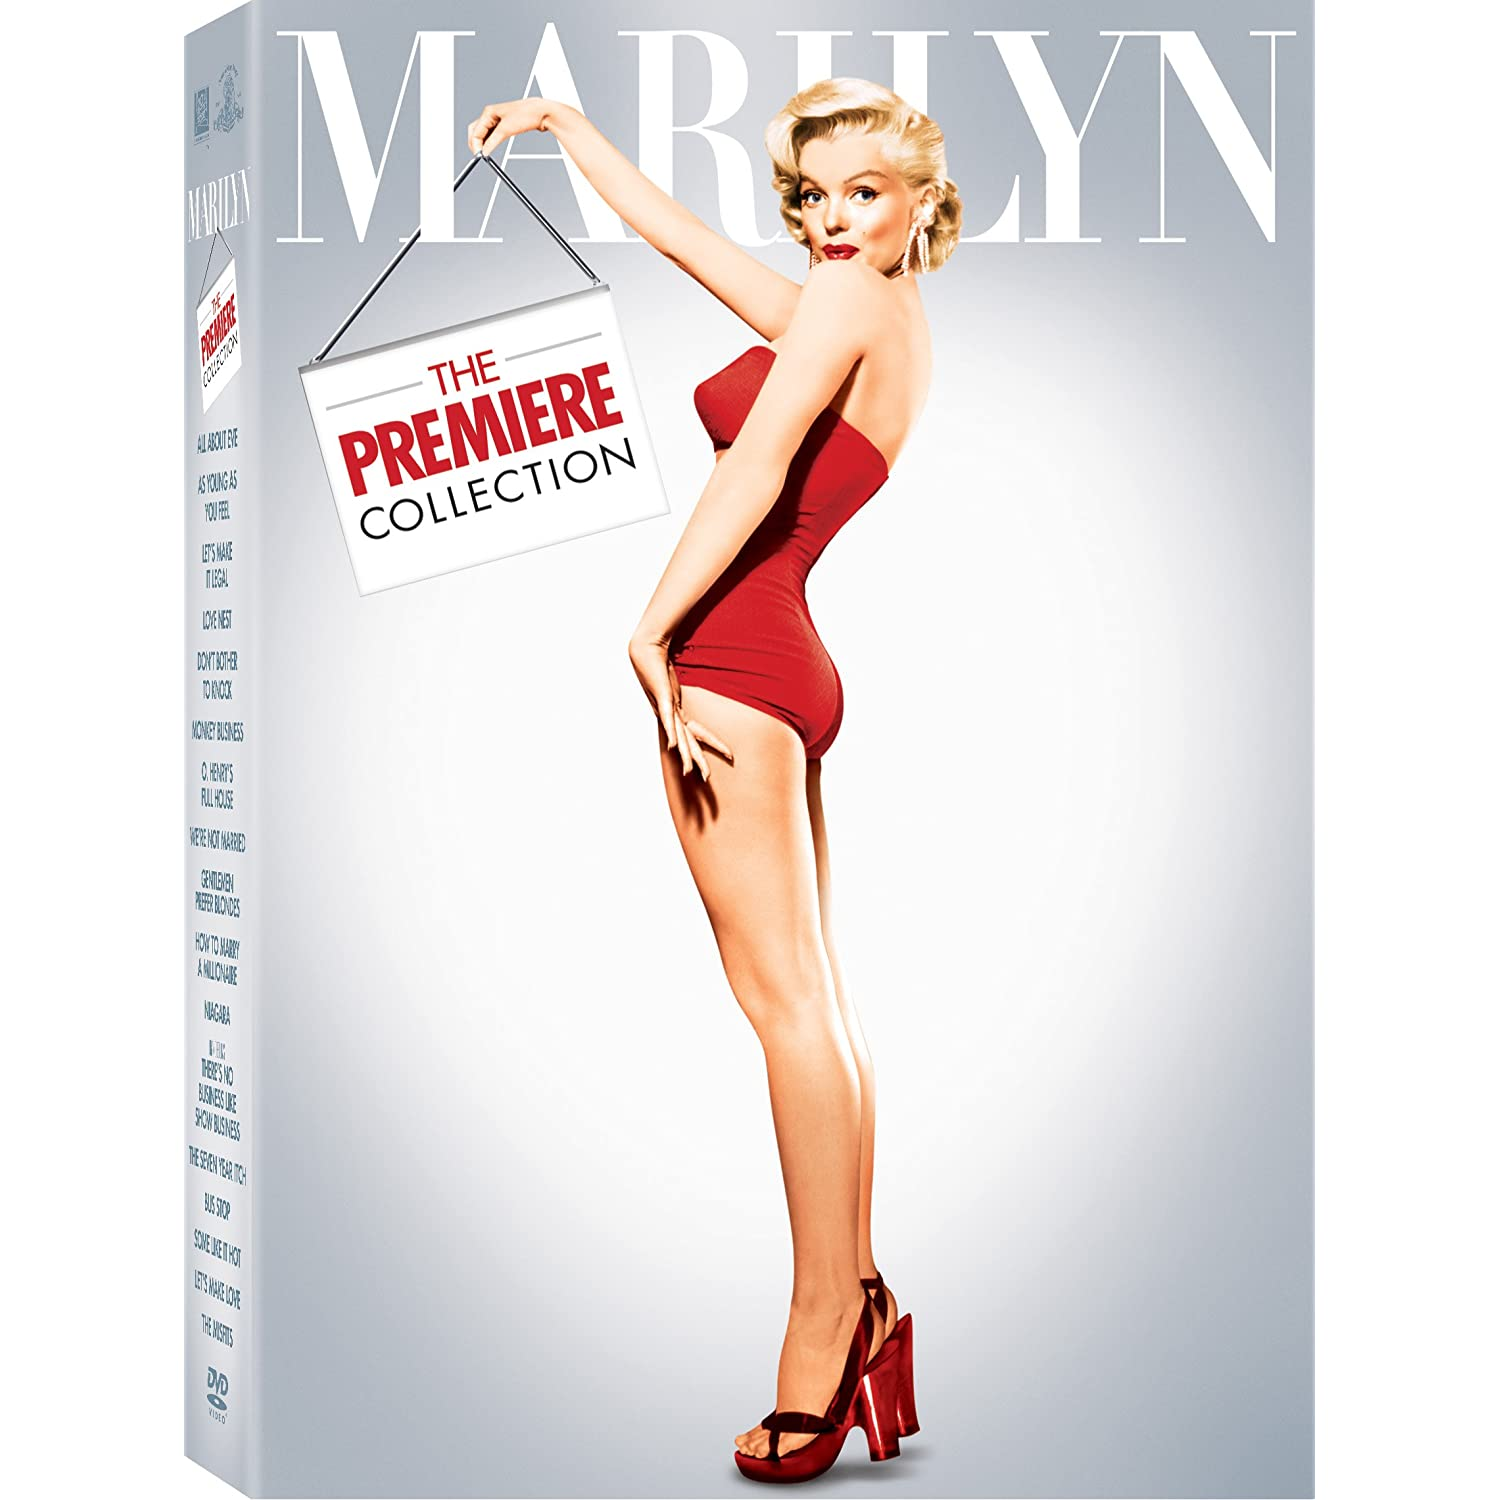 Marilyn Premier collection